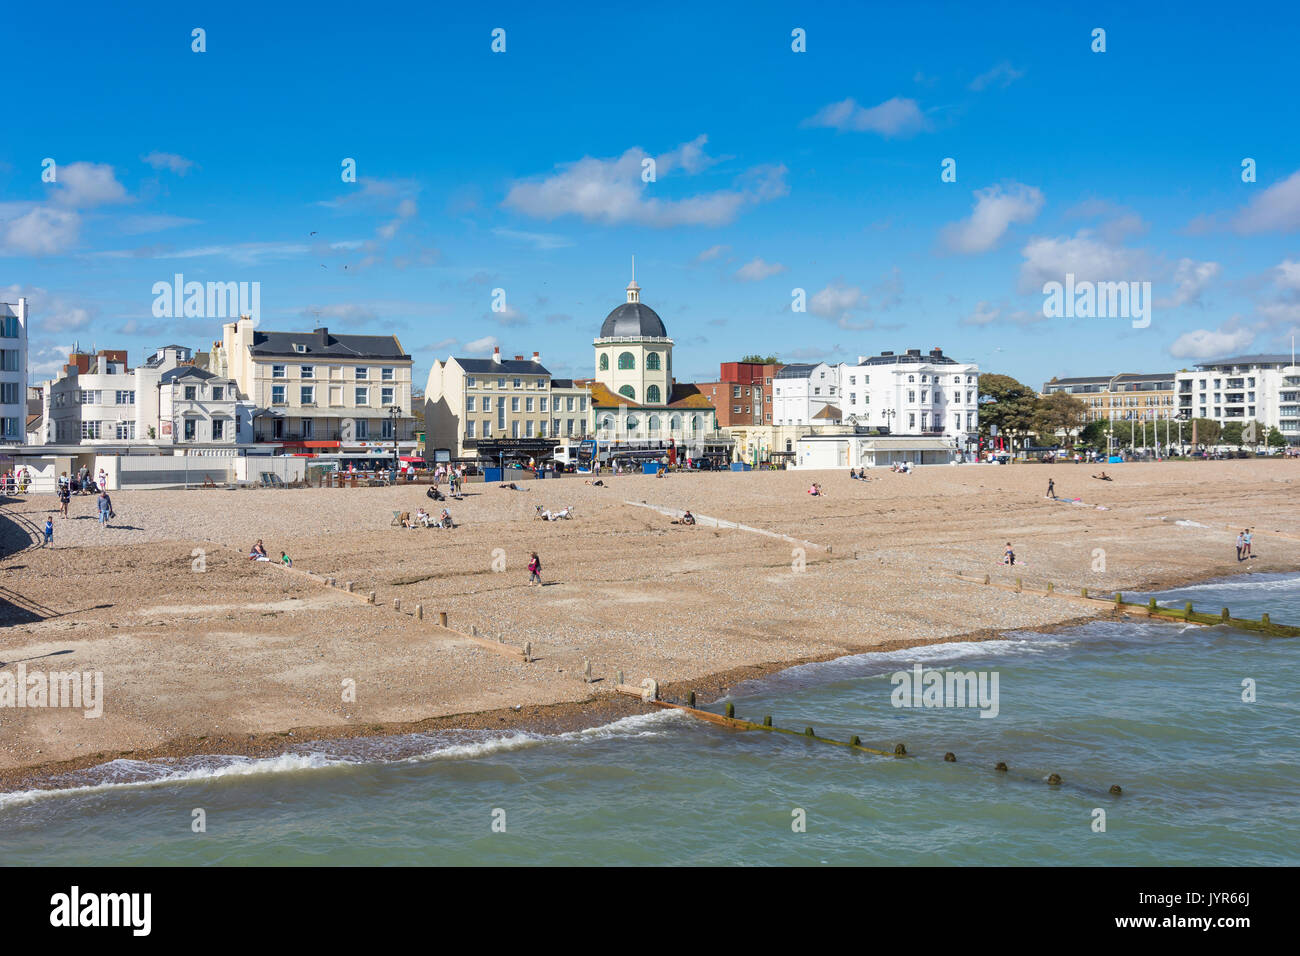 Beach and promenade from Worthing Pier, Worthing, West Sussex, England, United Kingdom - Stock Image